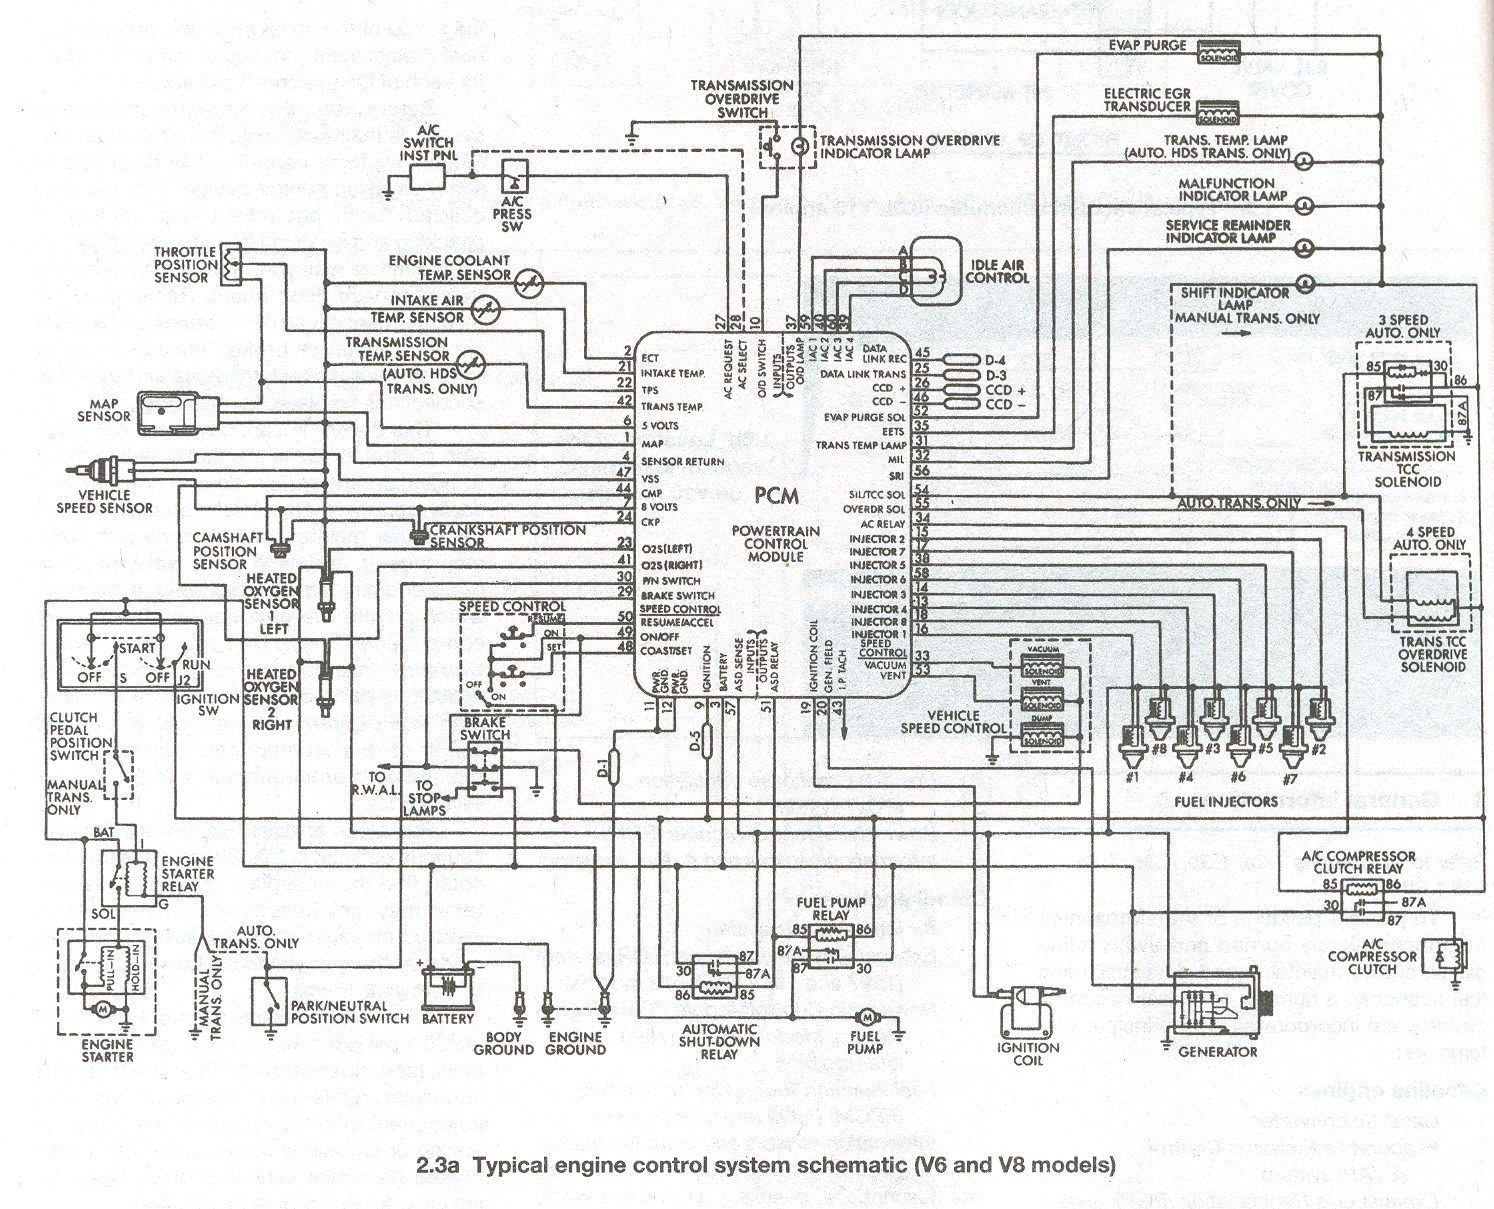 1966 chrysler 300 electric window wiring diagram [ 1494 x 1209 Pixel ]